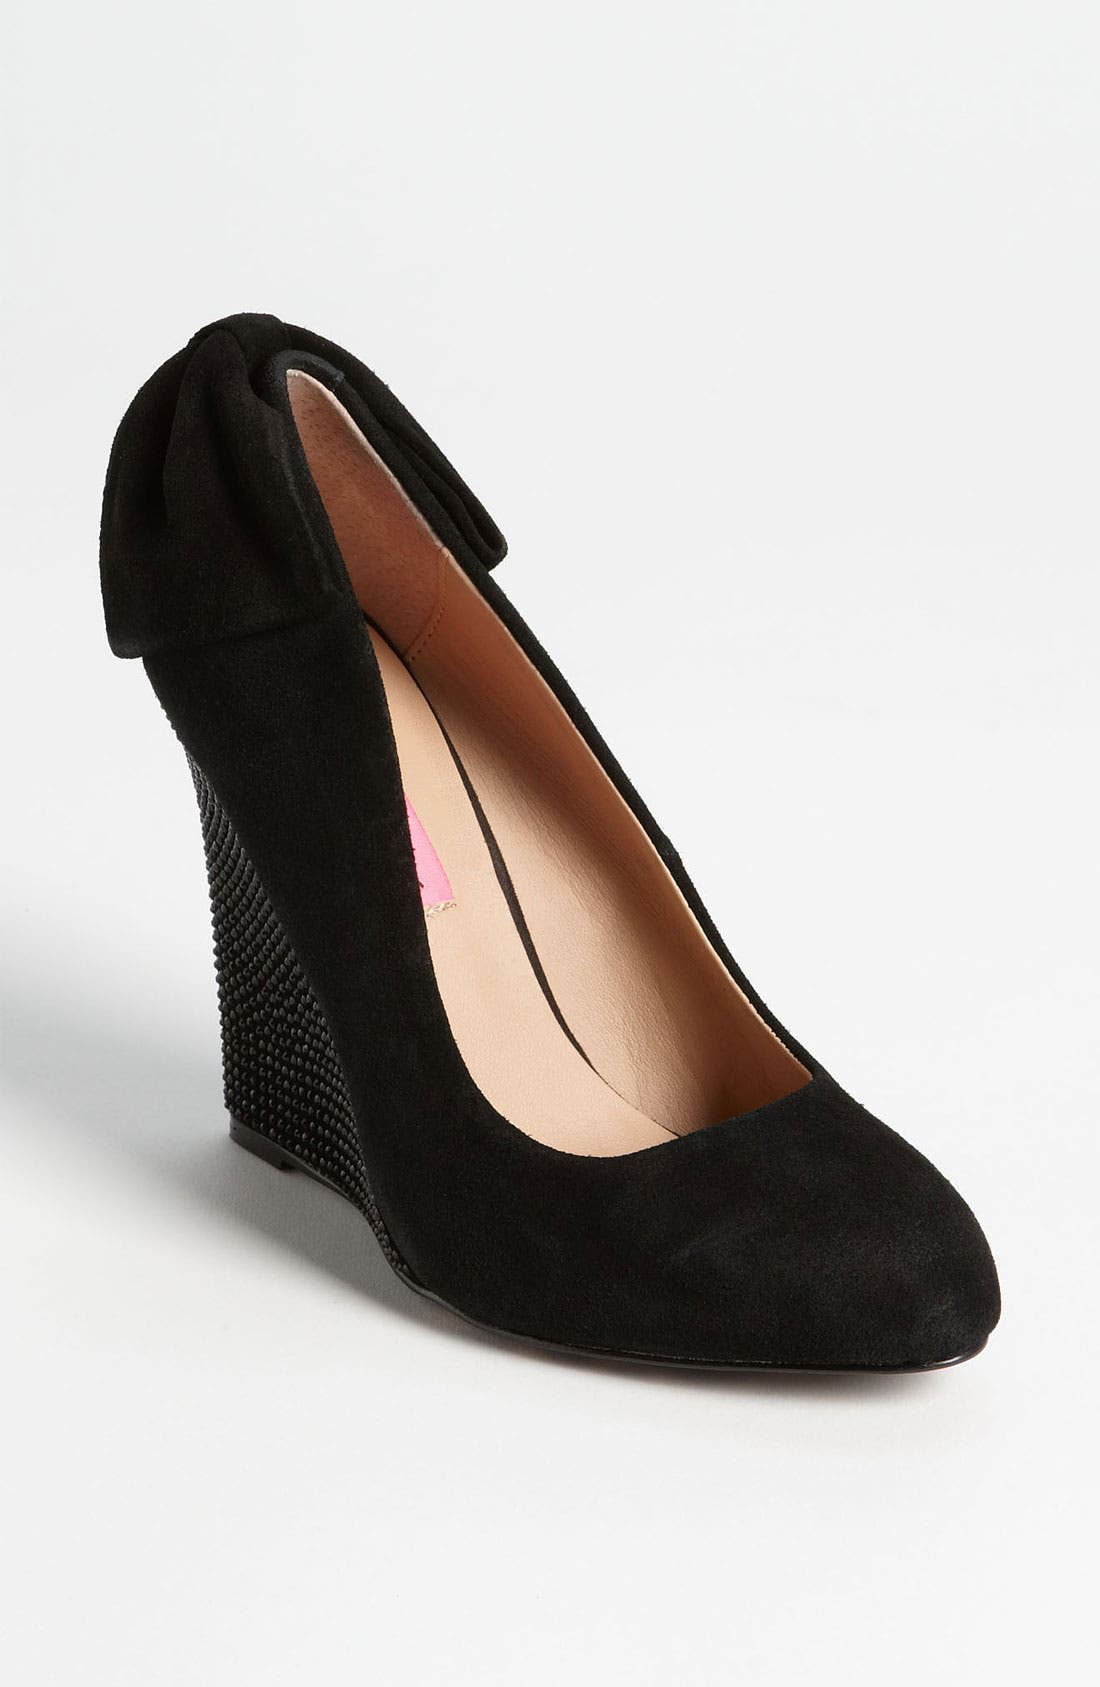 Alternate Image 1 Selected - Betsey Johnson 'Chhance' Pump